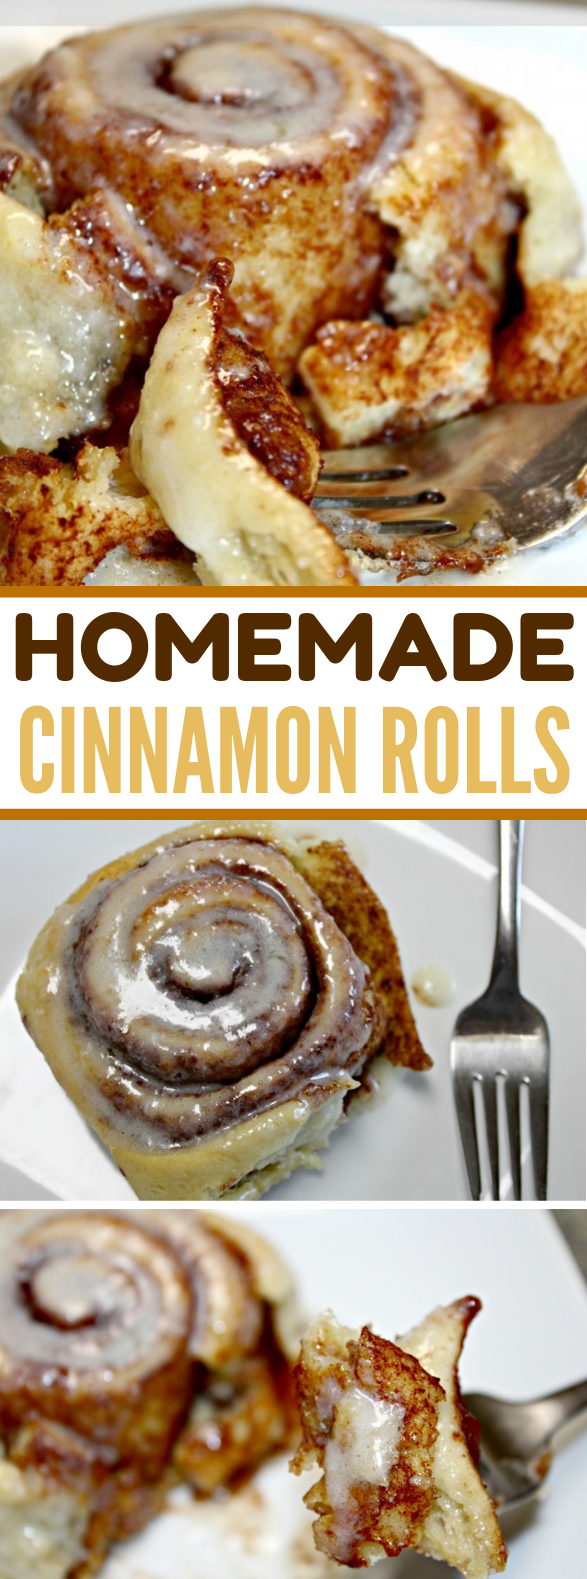 Homemade Cinnamon Rolls {Soft & Delicious!} #desserts #breakfast